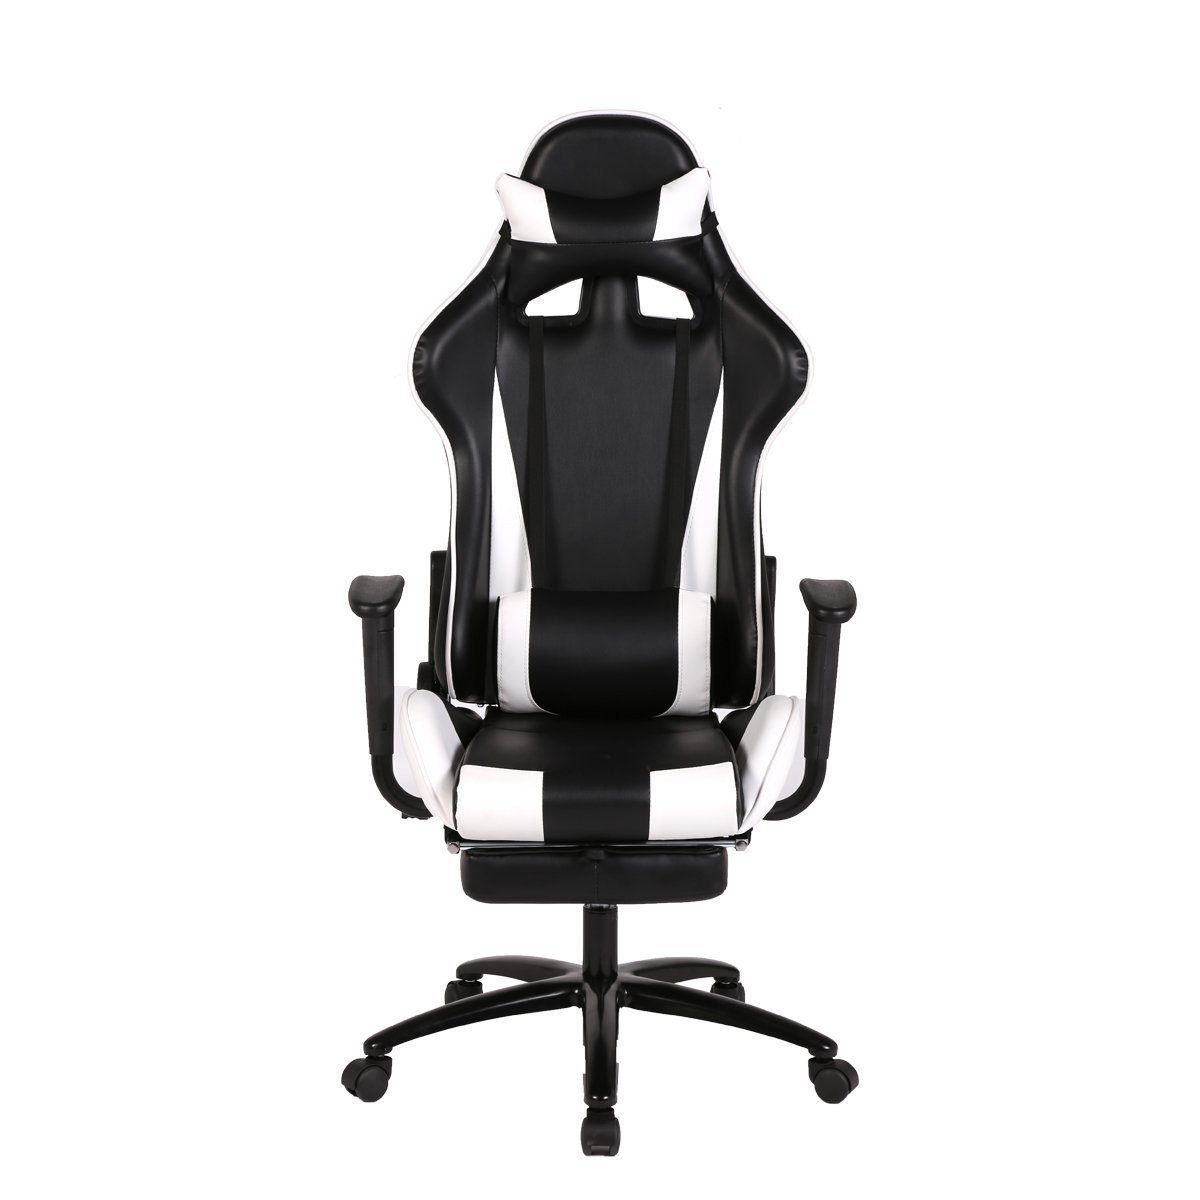 BestOffice High-Back Ergonomic Gaming Chair